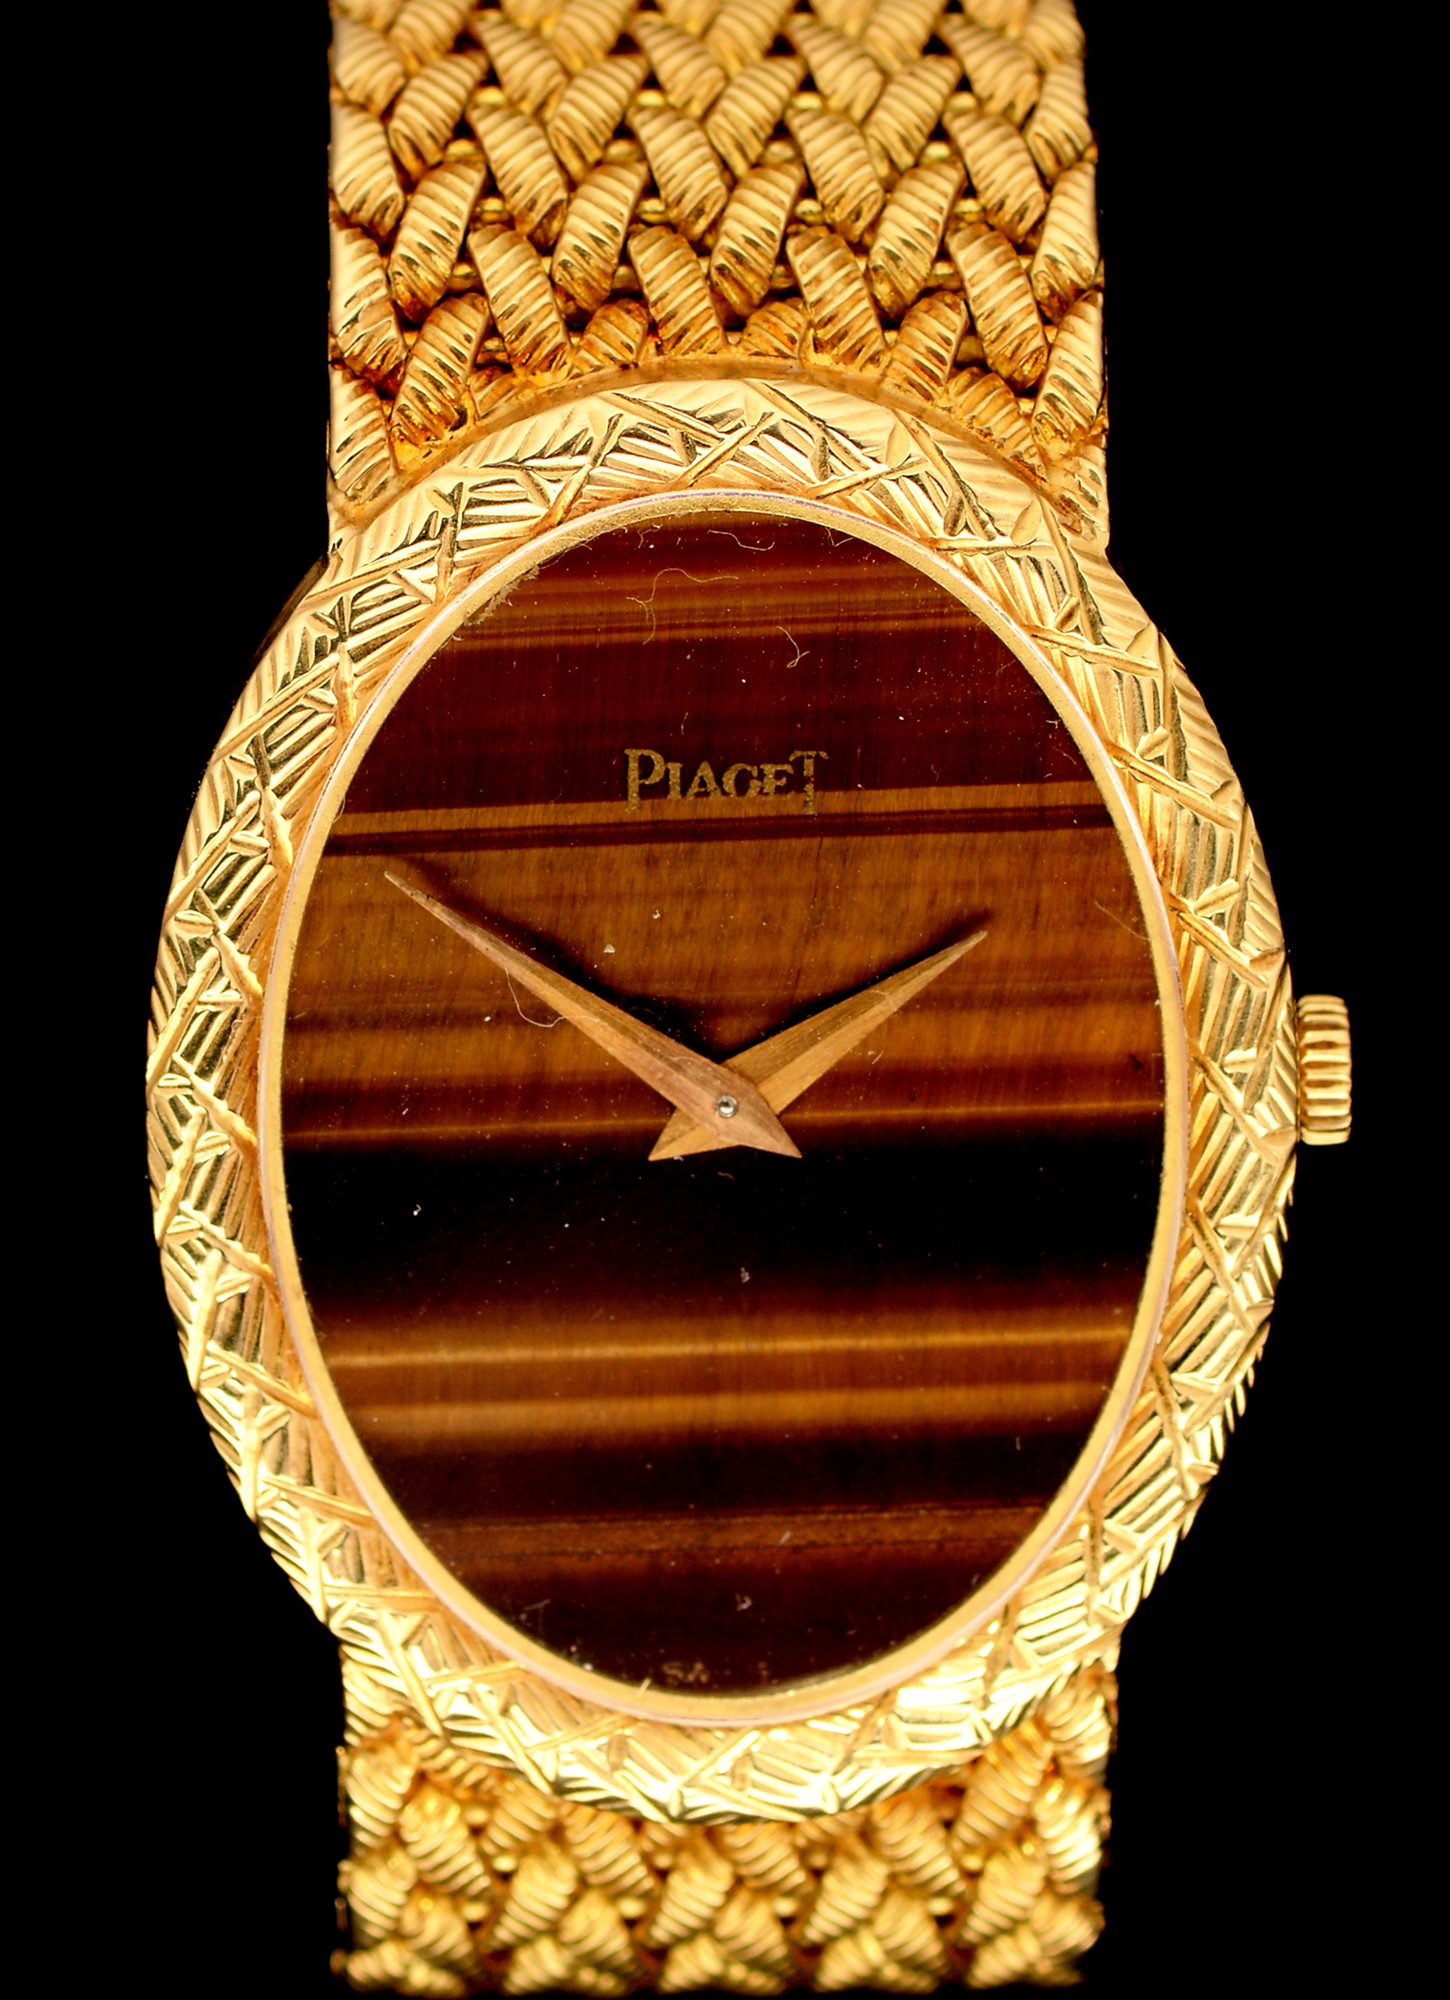 Lot 13 - Piaget 18ct gold watch